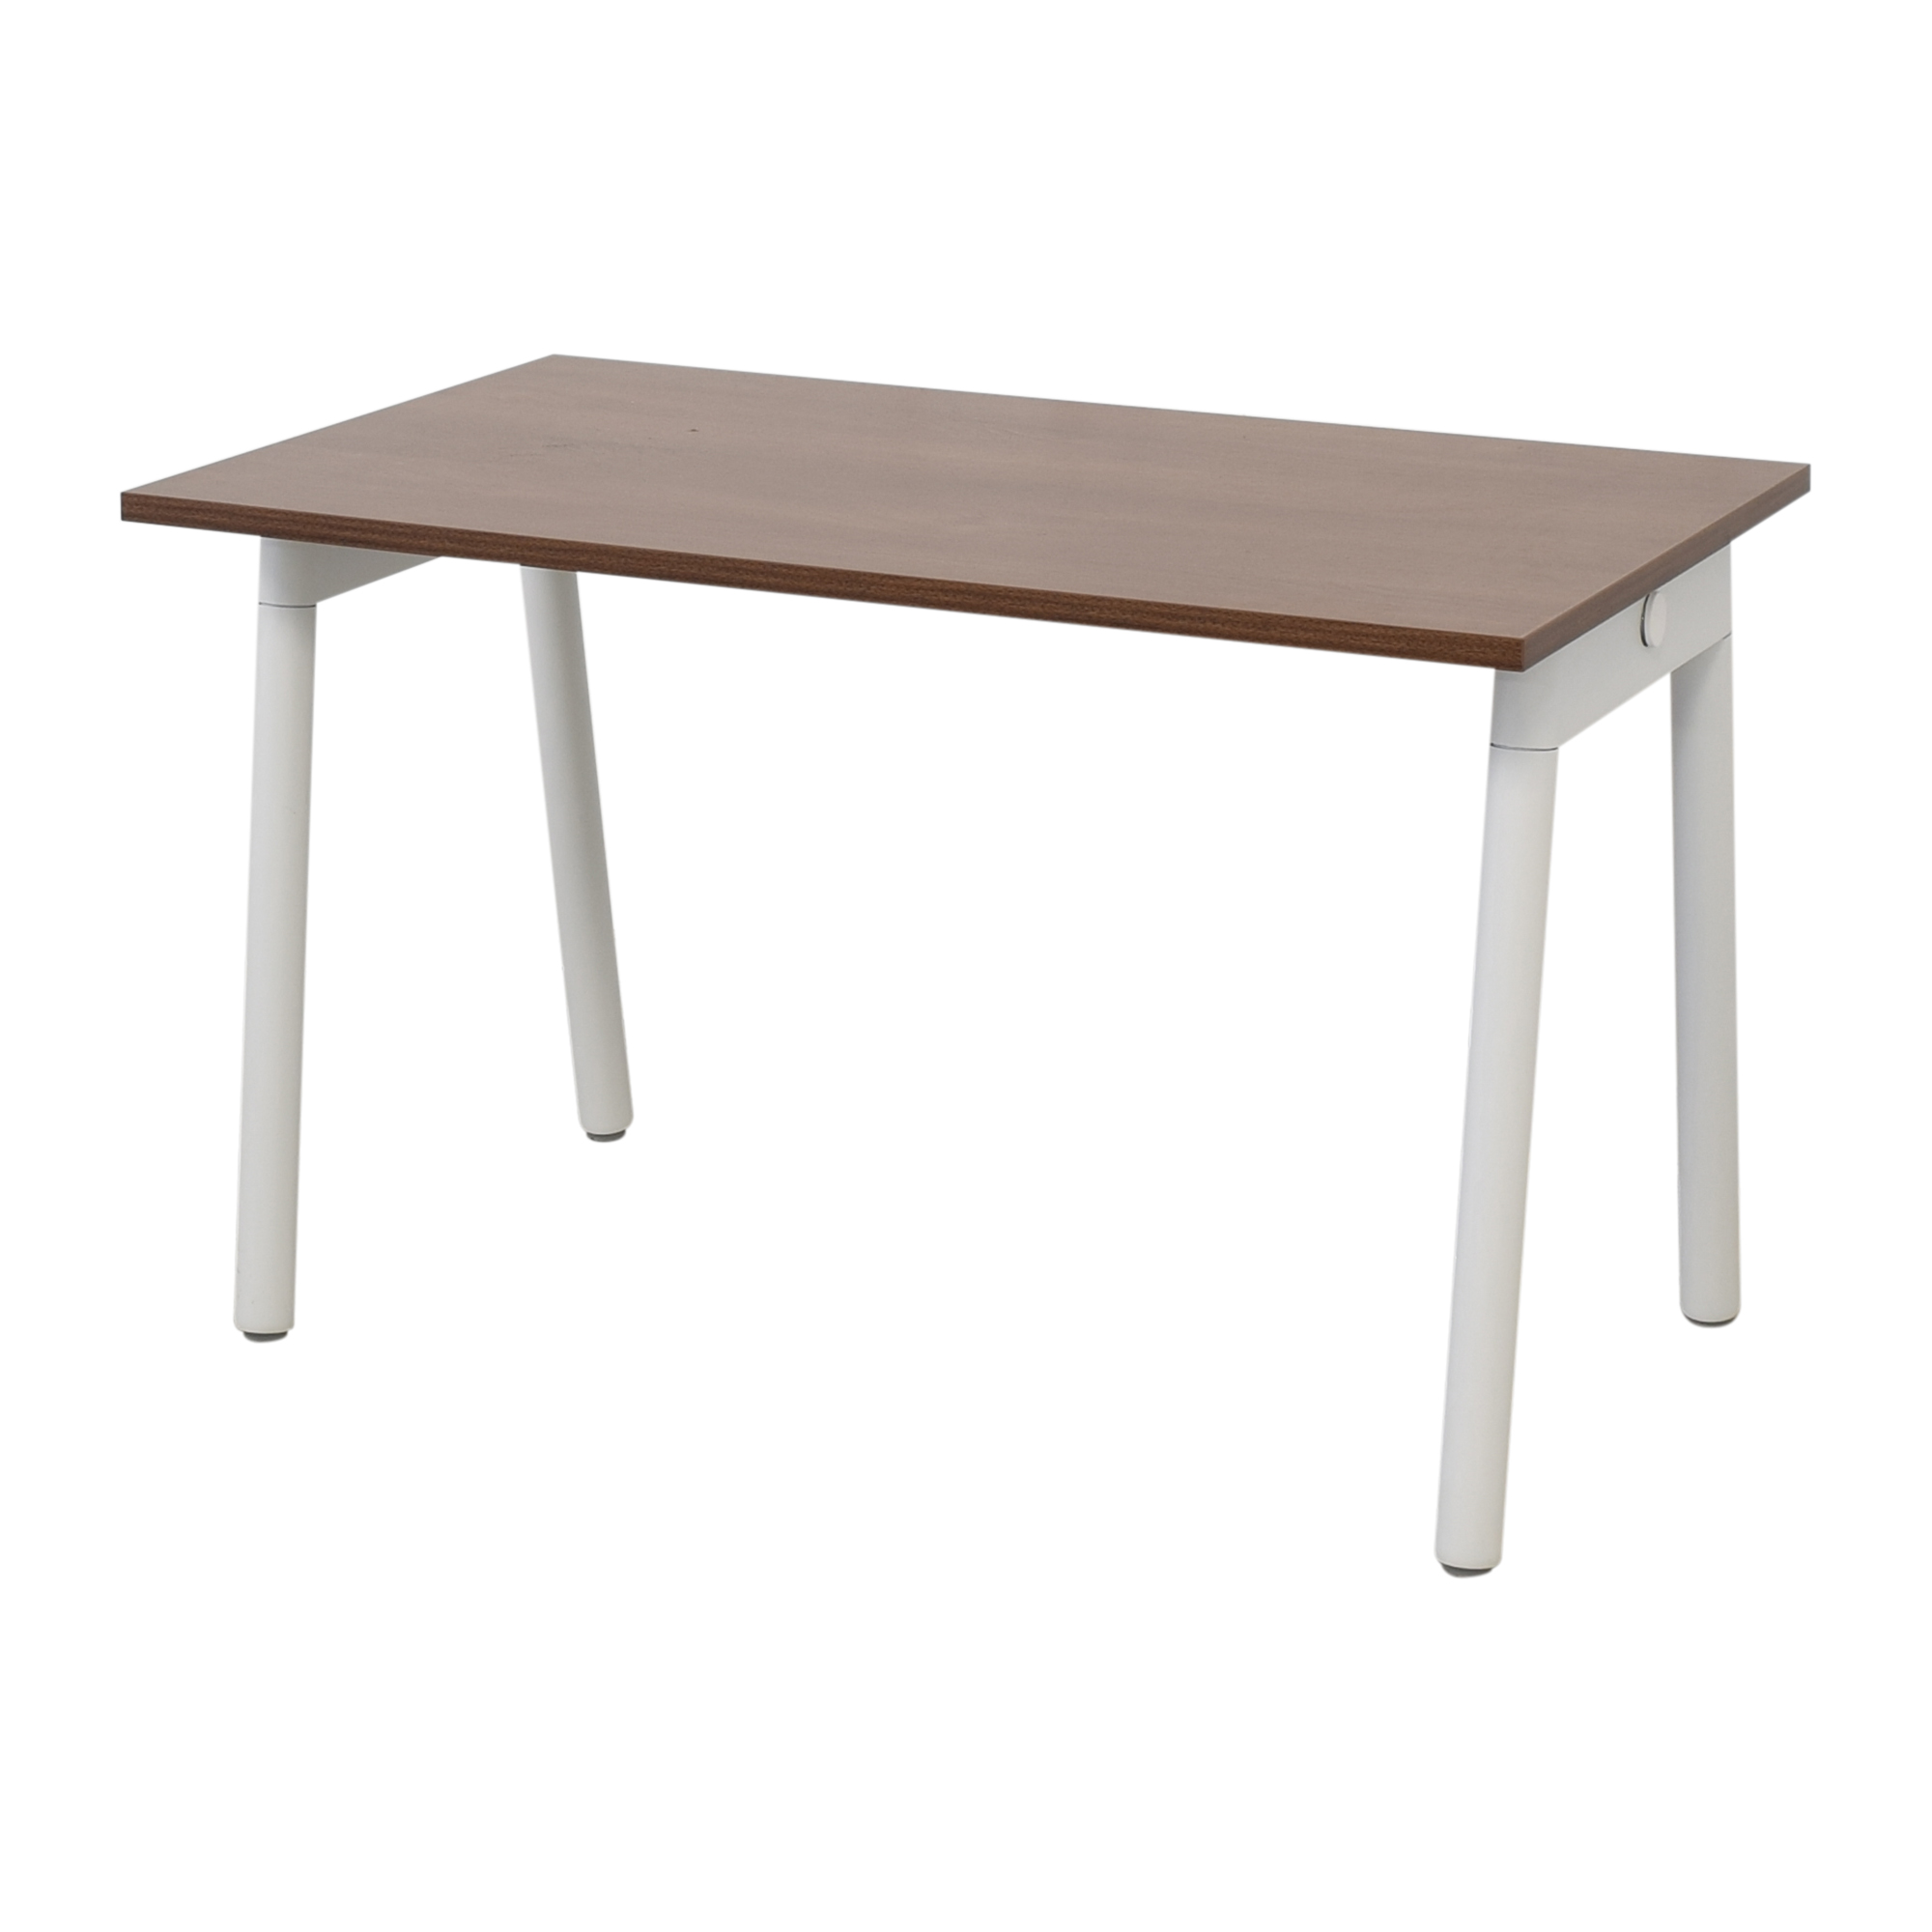 Poppin Poppin Series A Single Desk for One Home Office Desks